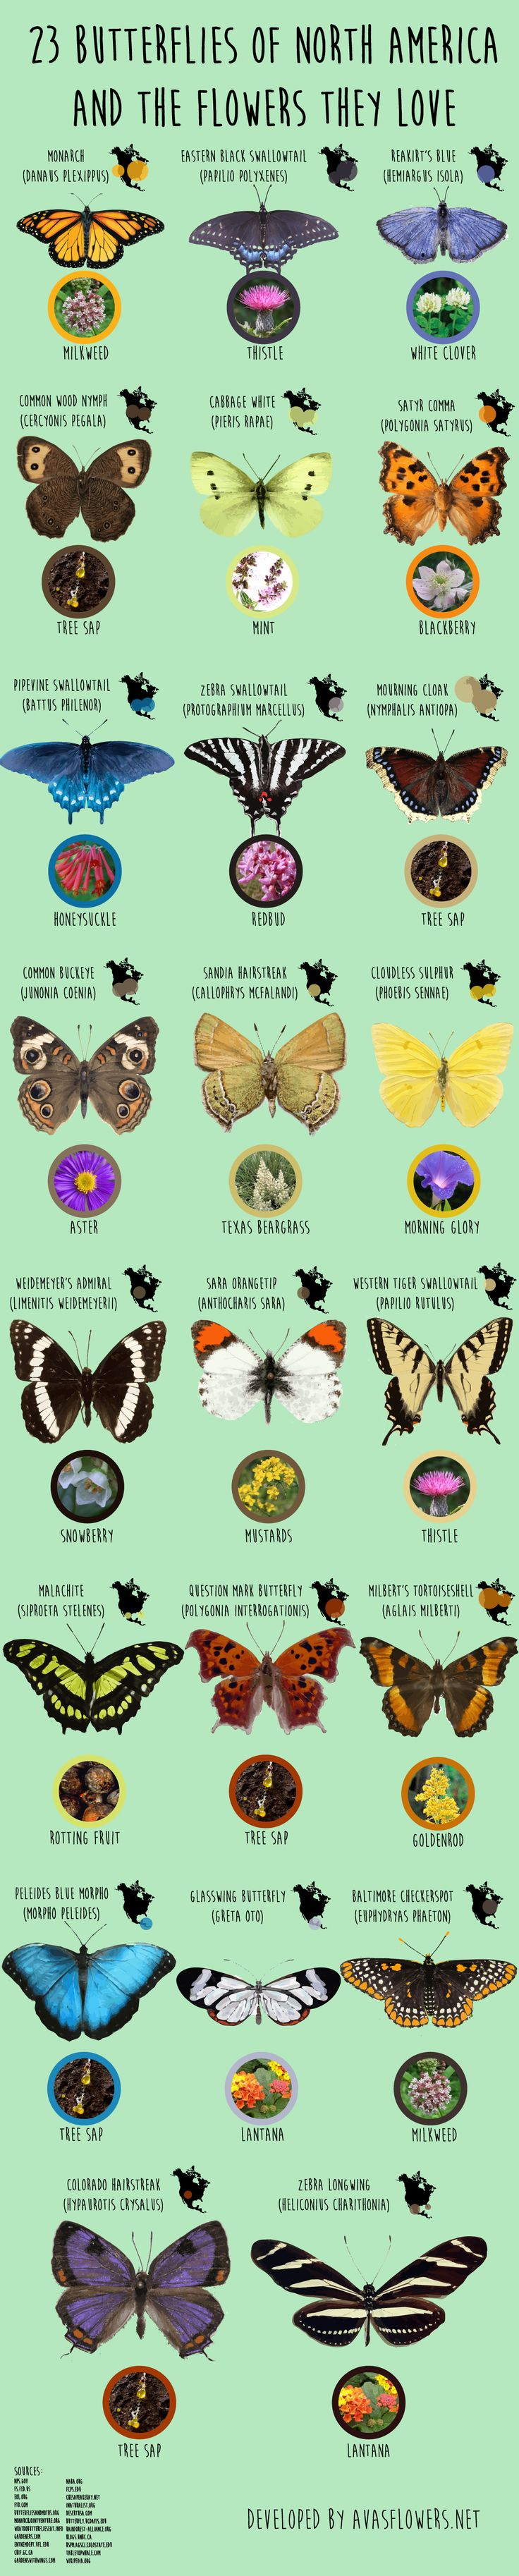 Native butterflies and the flowers they love